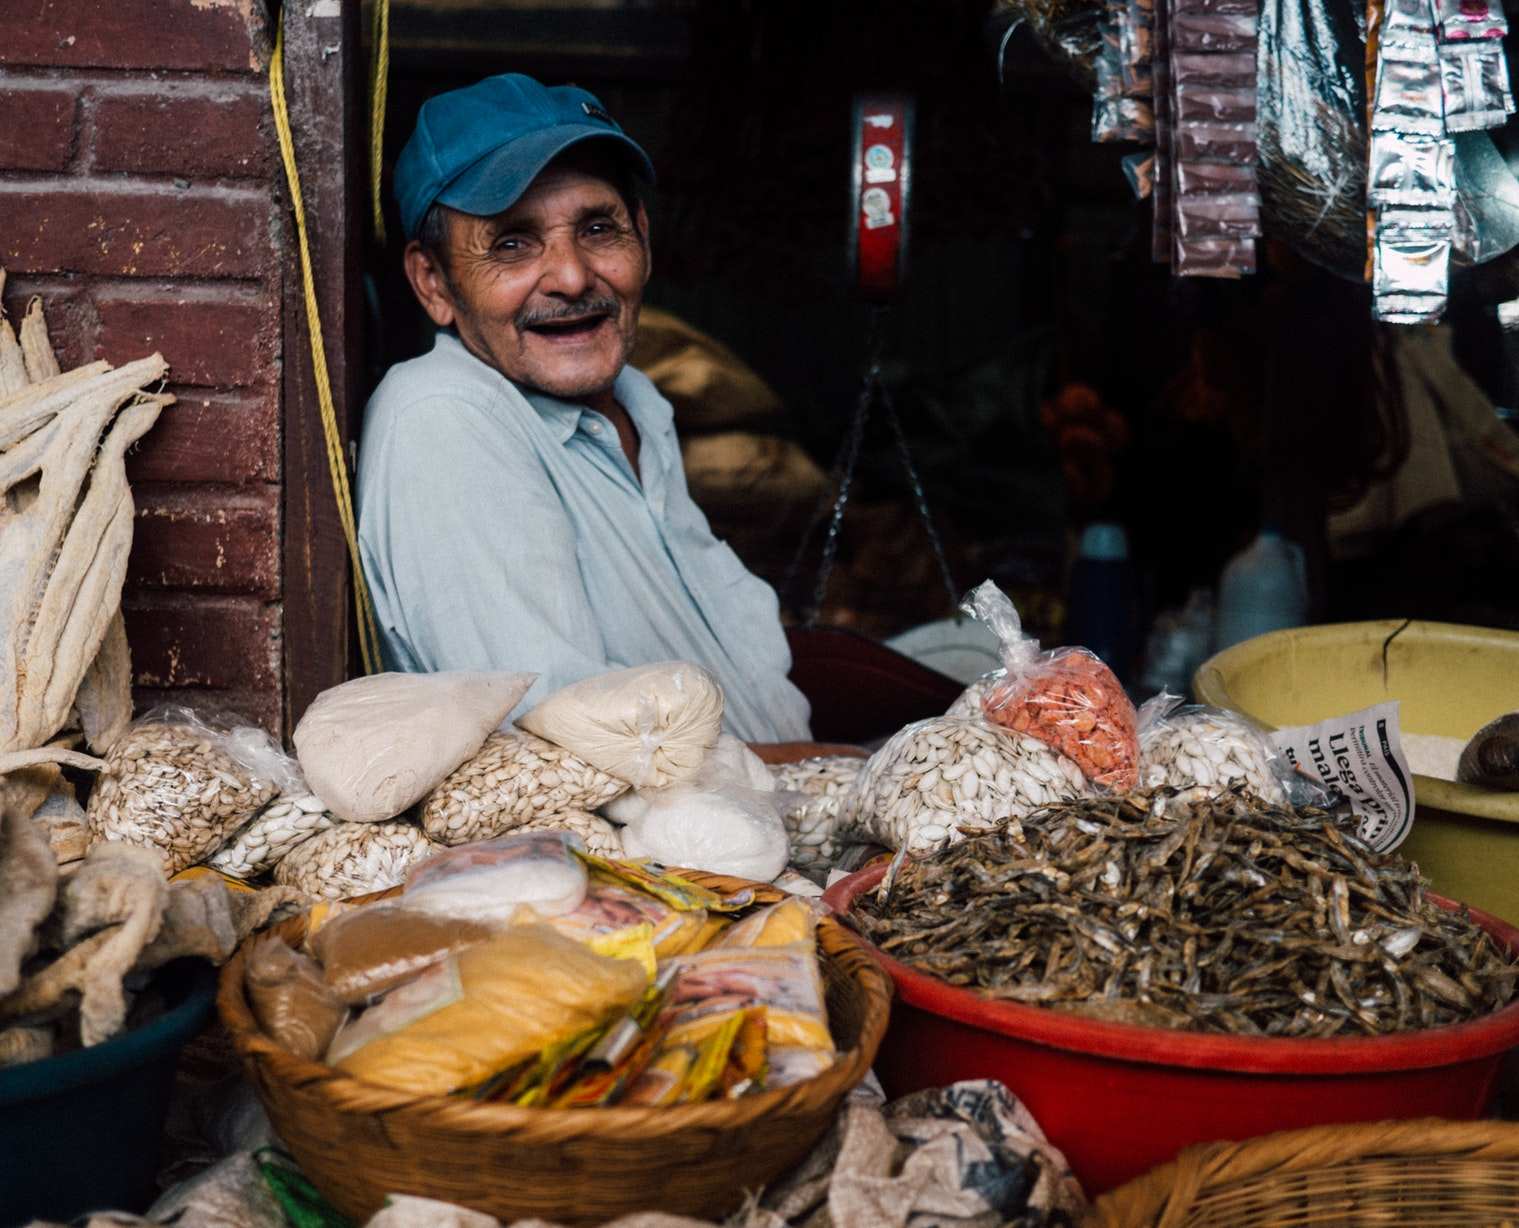 street food in central america